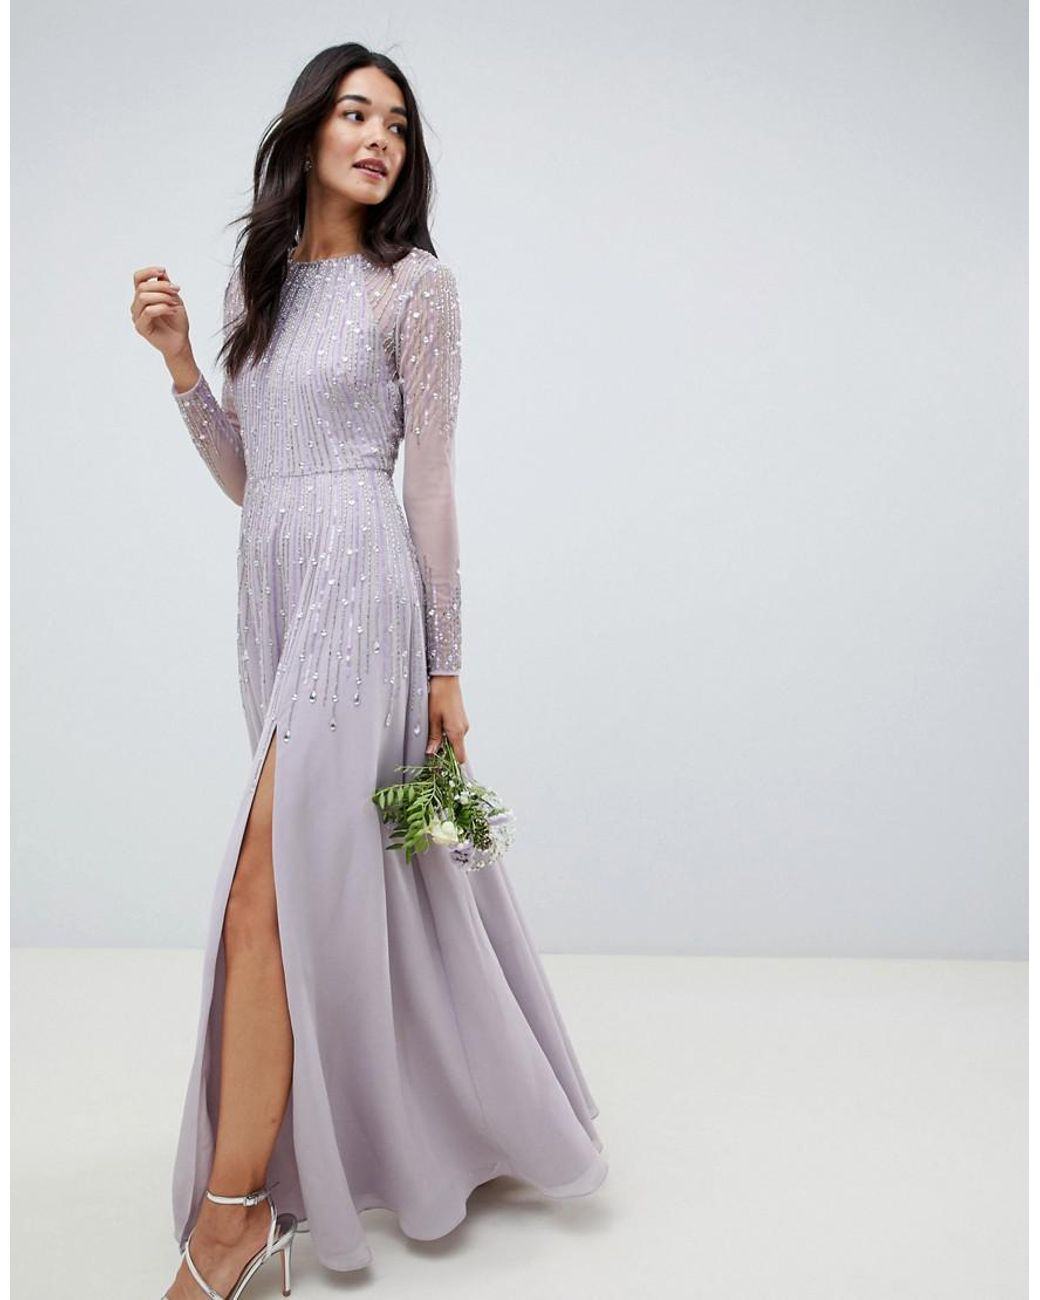 77b56b5de0 ASOS Maxi Dress In Delicate Linear Sequin With Long Sleeves in Gray ...